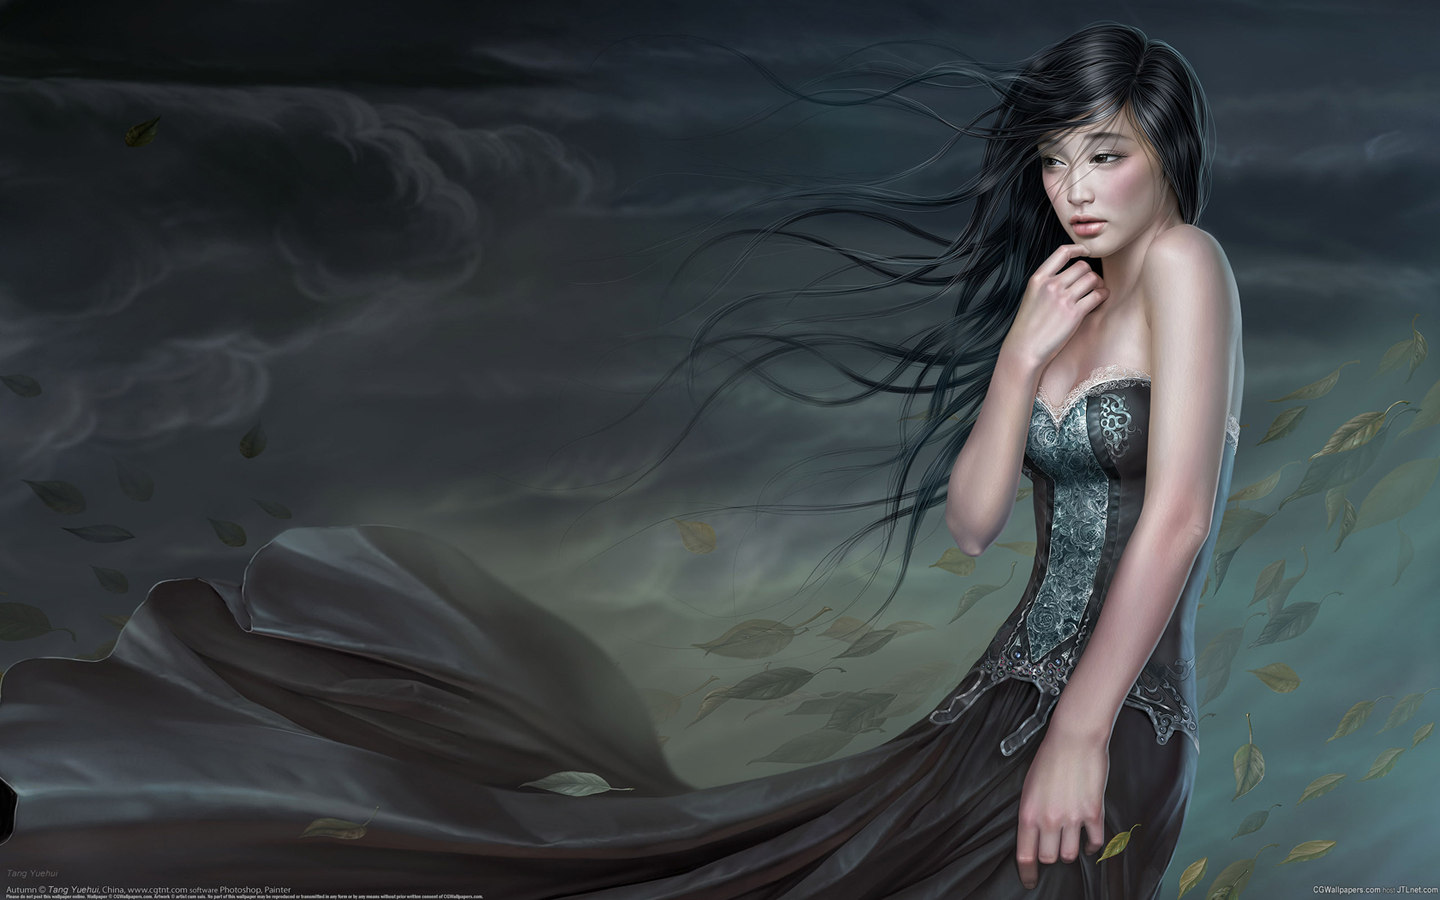 CG beautiful painting wallpaper 24335